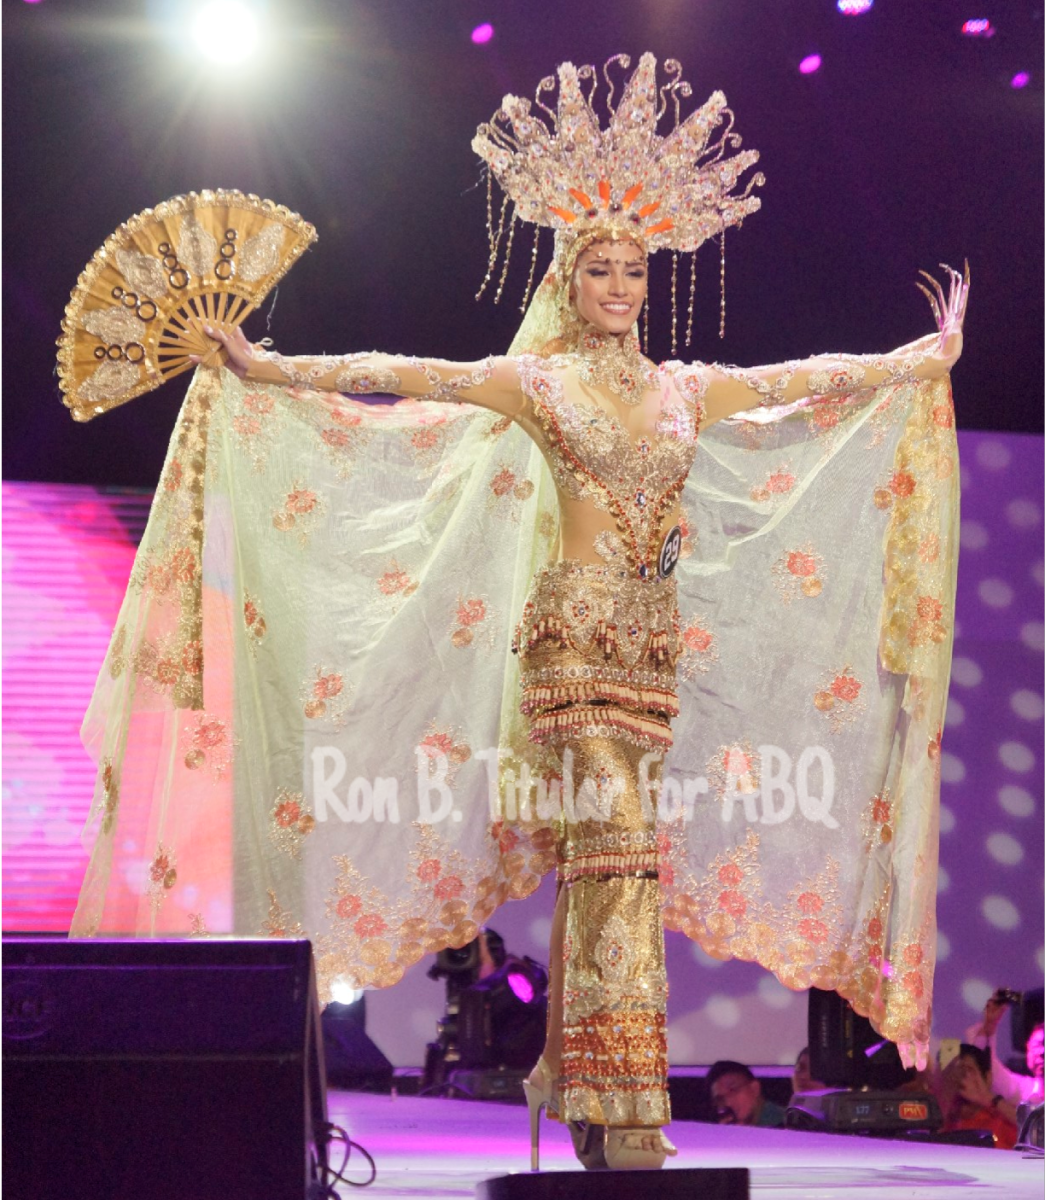 My Top 5 Favorite National Costumes at the Bb. Pilipinas 2015 Fashion Show